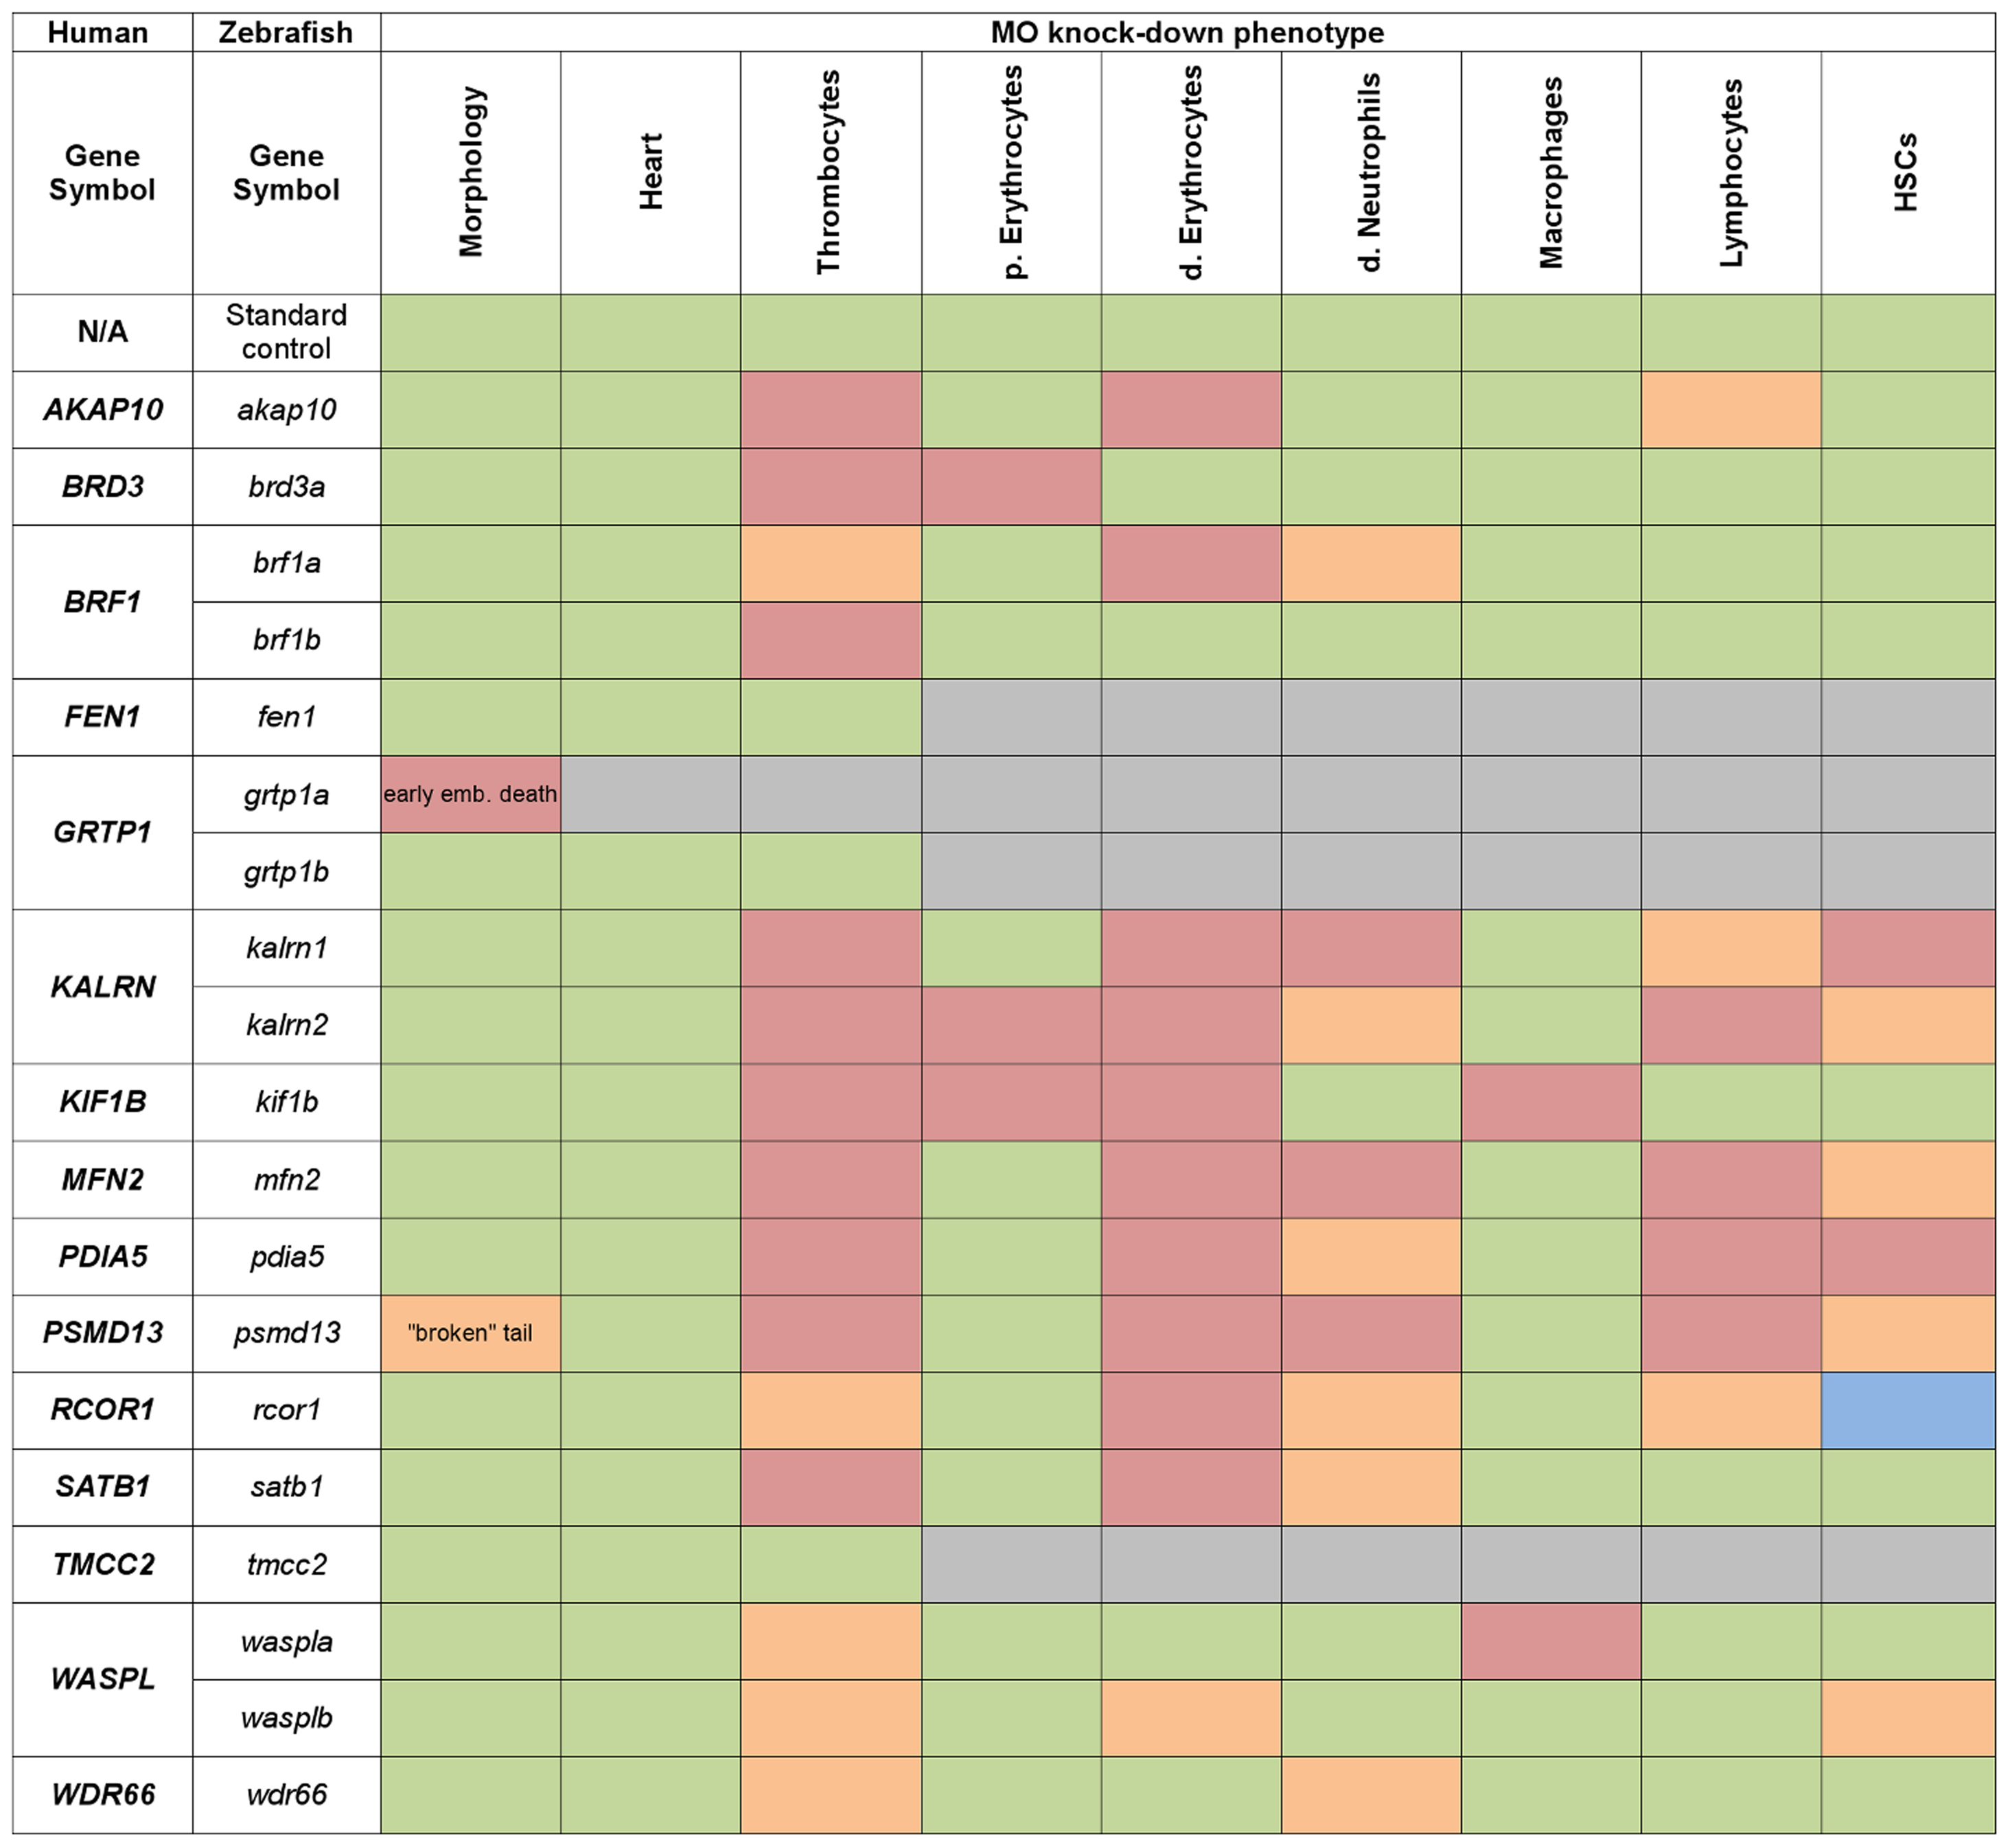 Heat map summarising hematopoietic phenotypes of knock-down of 19 candidate genes.